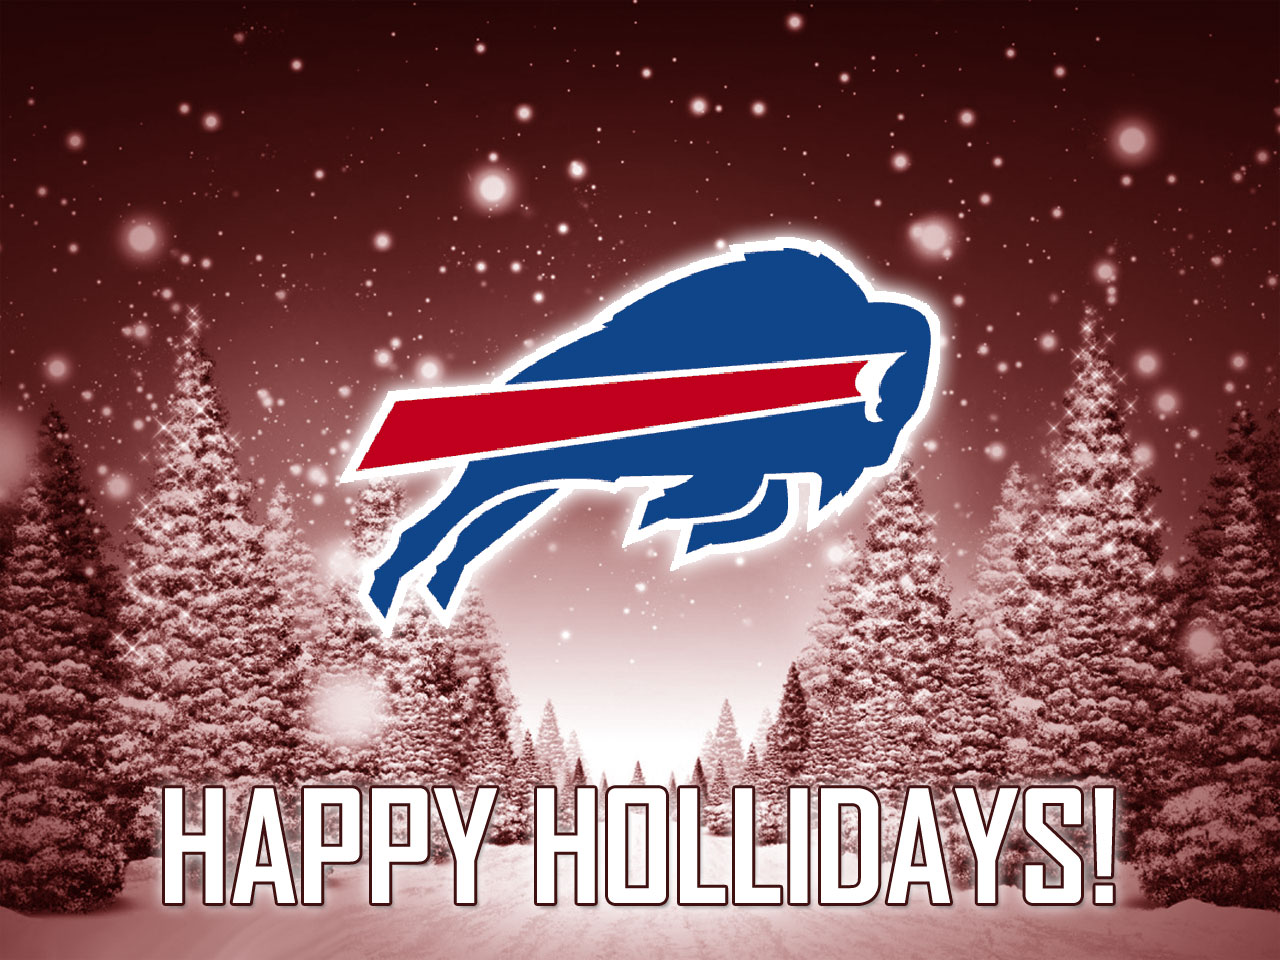 Buffalo Bills HD background Buffalo Bills wallpapers 1280x960